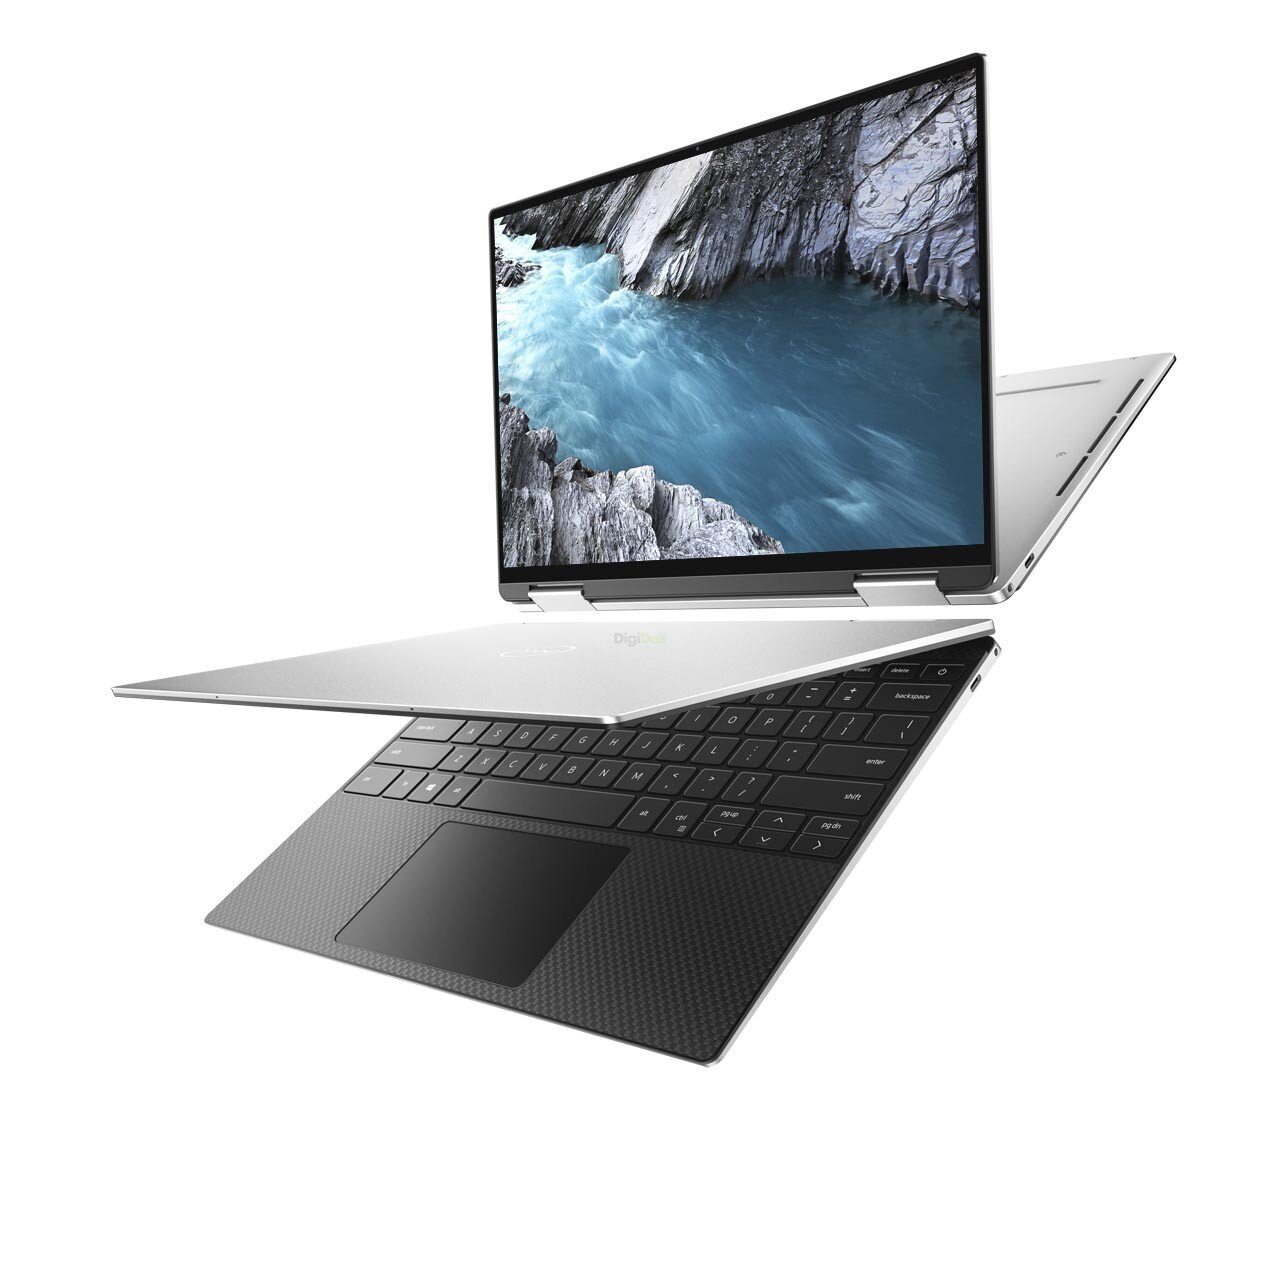 Dell XPS 13 7390 2-in-1, UHD+ Touch, i7-1065G7, 32GB, 1TB, W10, Silver